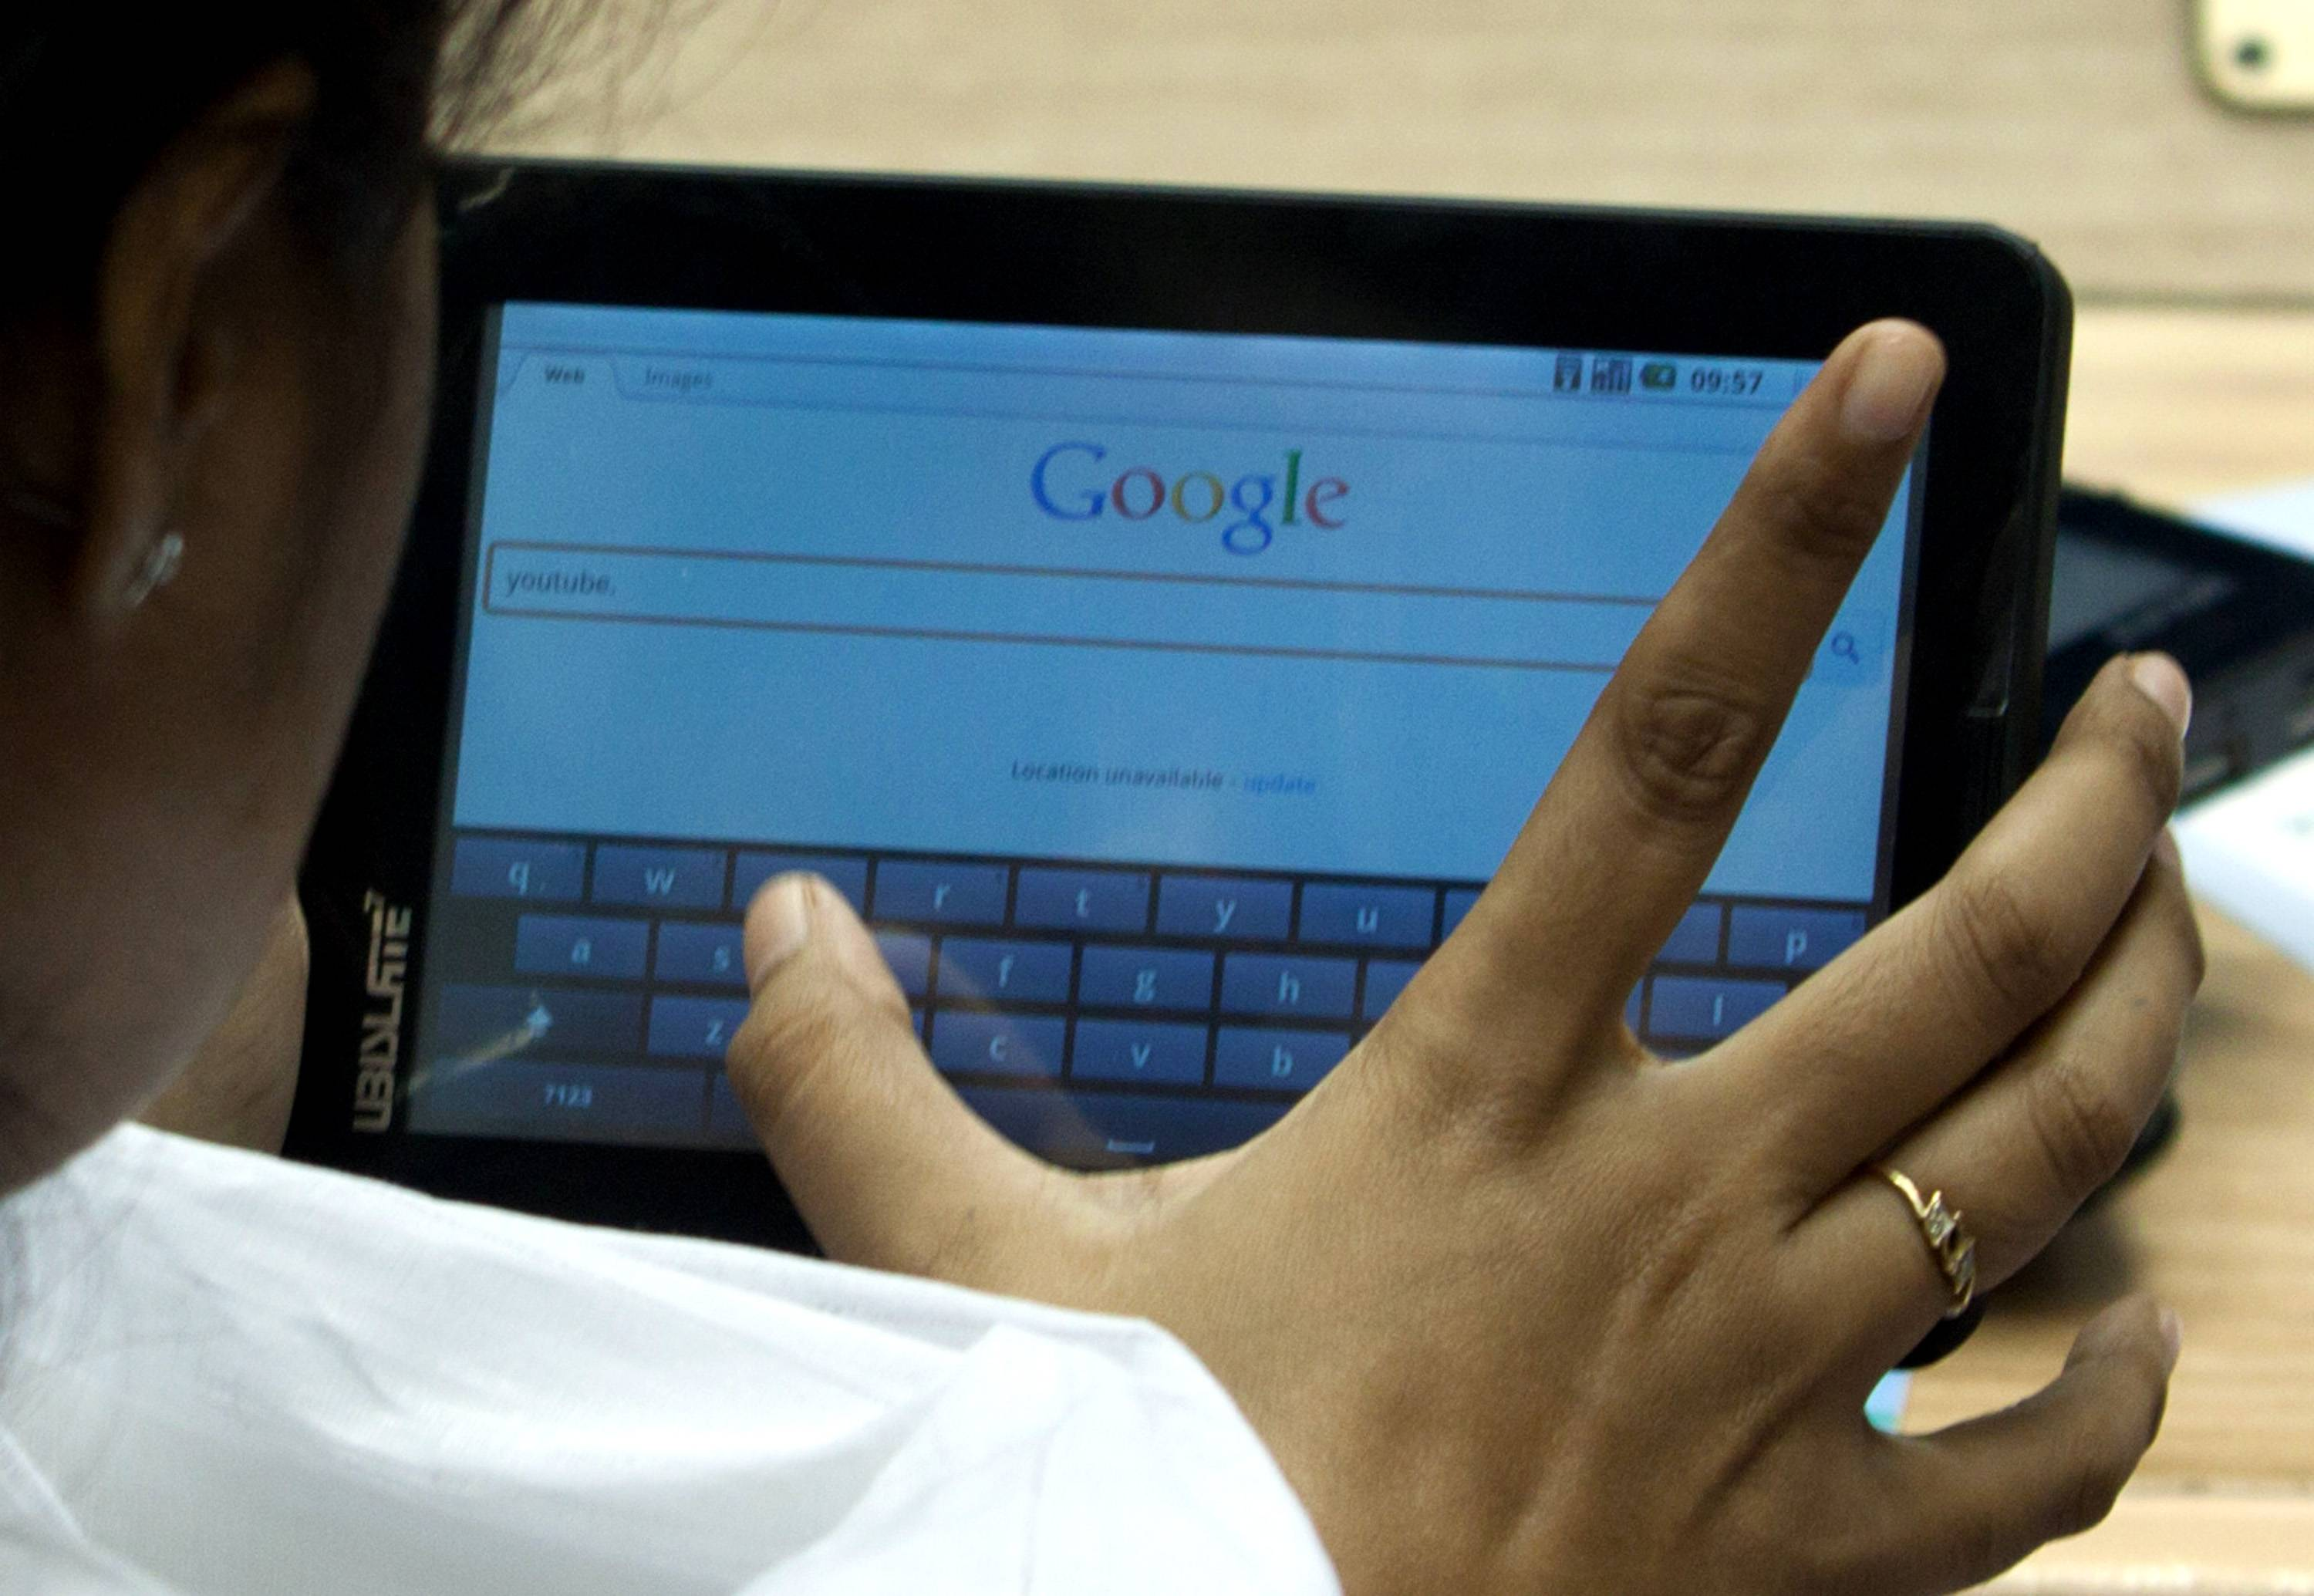 A student uses the 'Aakash' tablet computer to search the Google Web page during a news conference in New Delhi, India, on Wednesday, Oct. 5, 2011. India plans to sell tablet computers operating on Google Inc.'s Android system for students for as low as 1,100 rupees ($22) as Asia's third-biggest economy aims to boost usage of computers. Photographer: Pankaj Nangia/Bloomberg